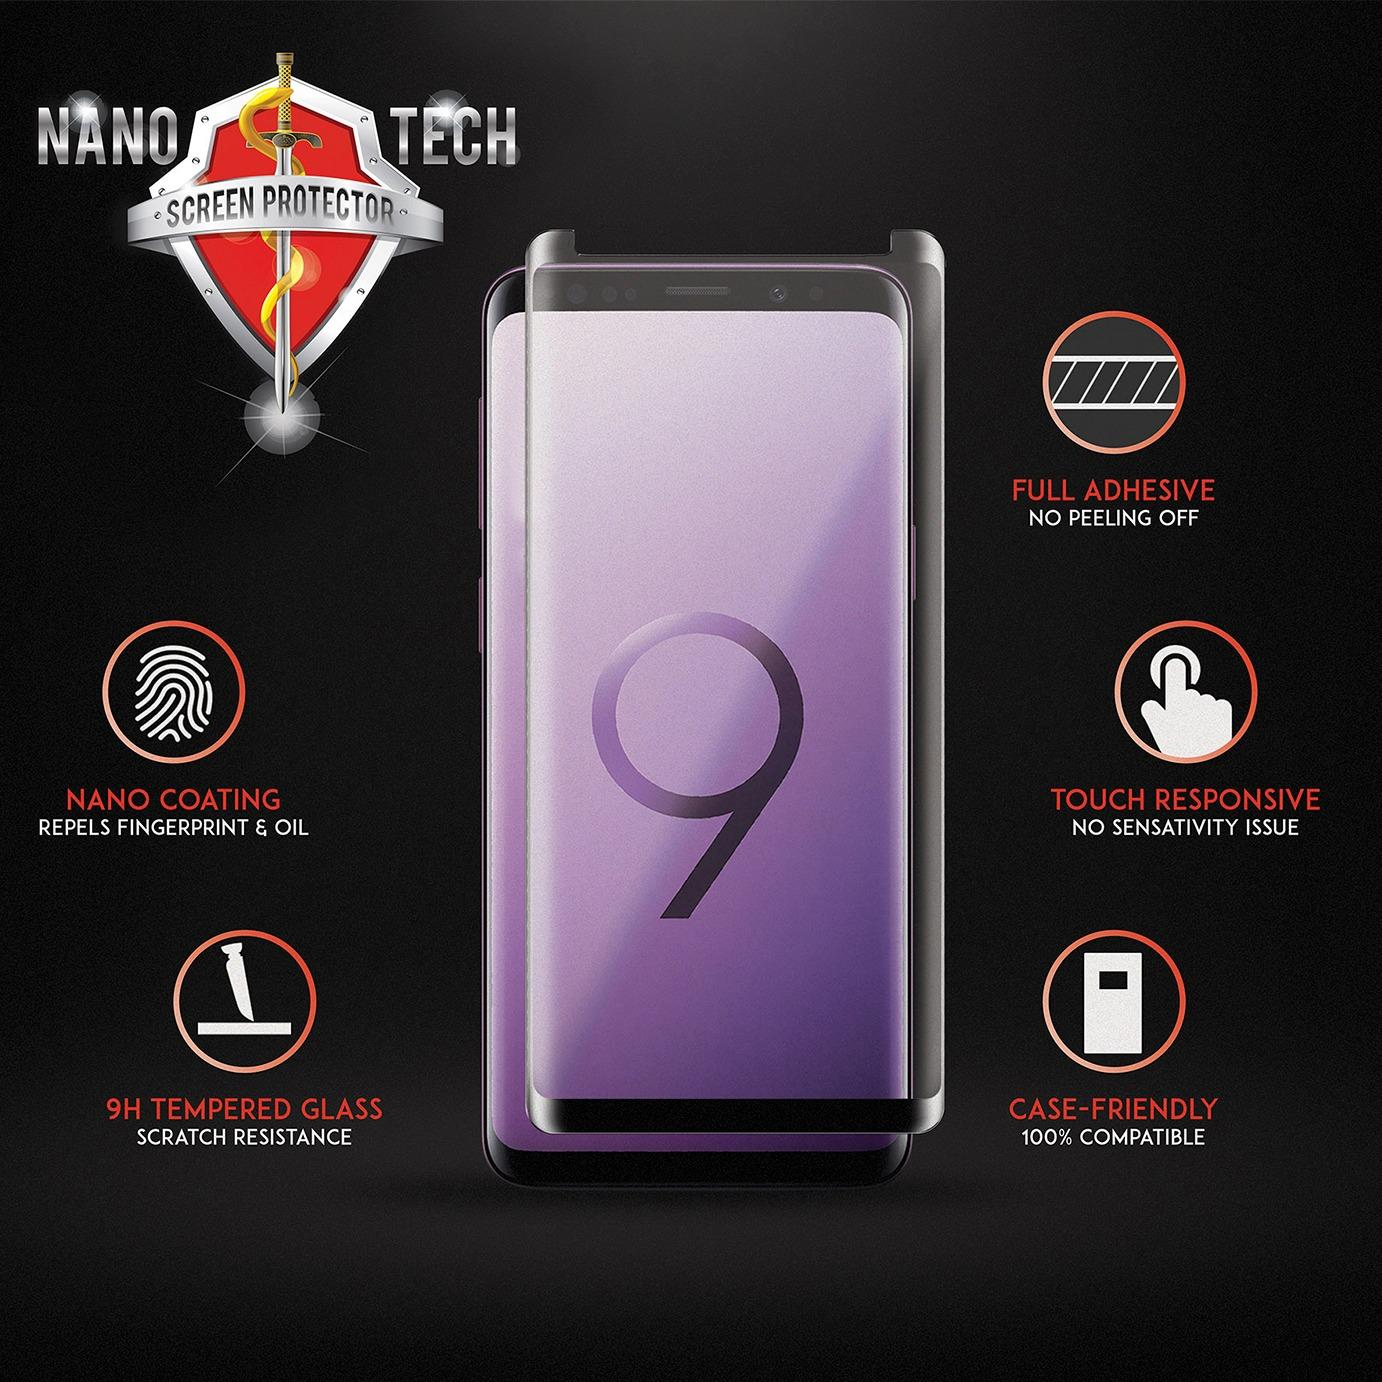 Nanotech Samsung Galaxy S9 /S9 Plus/Note 8/S8/S8 Plus Full Adhesive Curved Tempered Glass